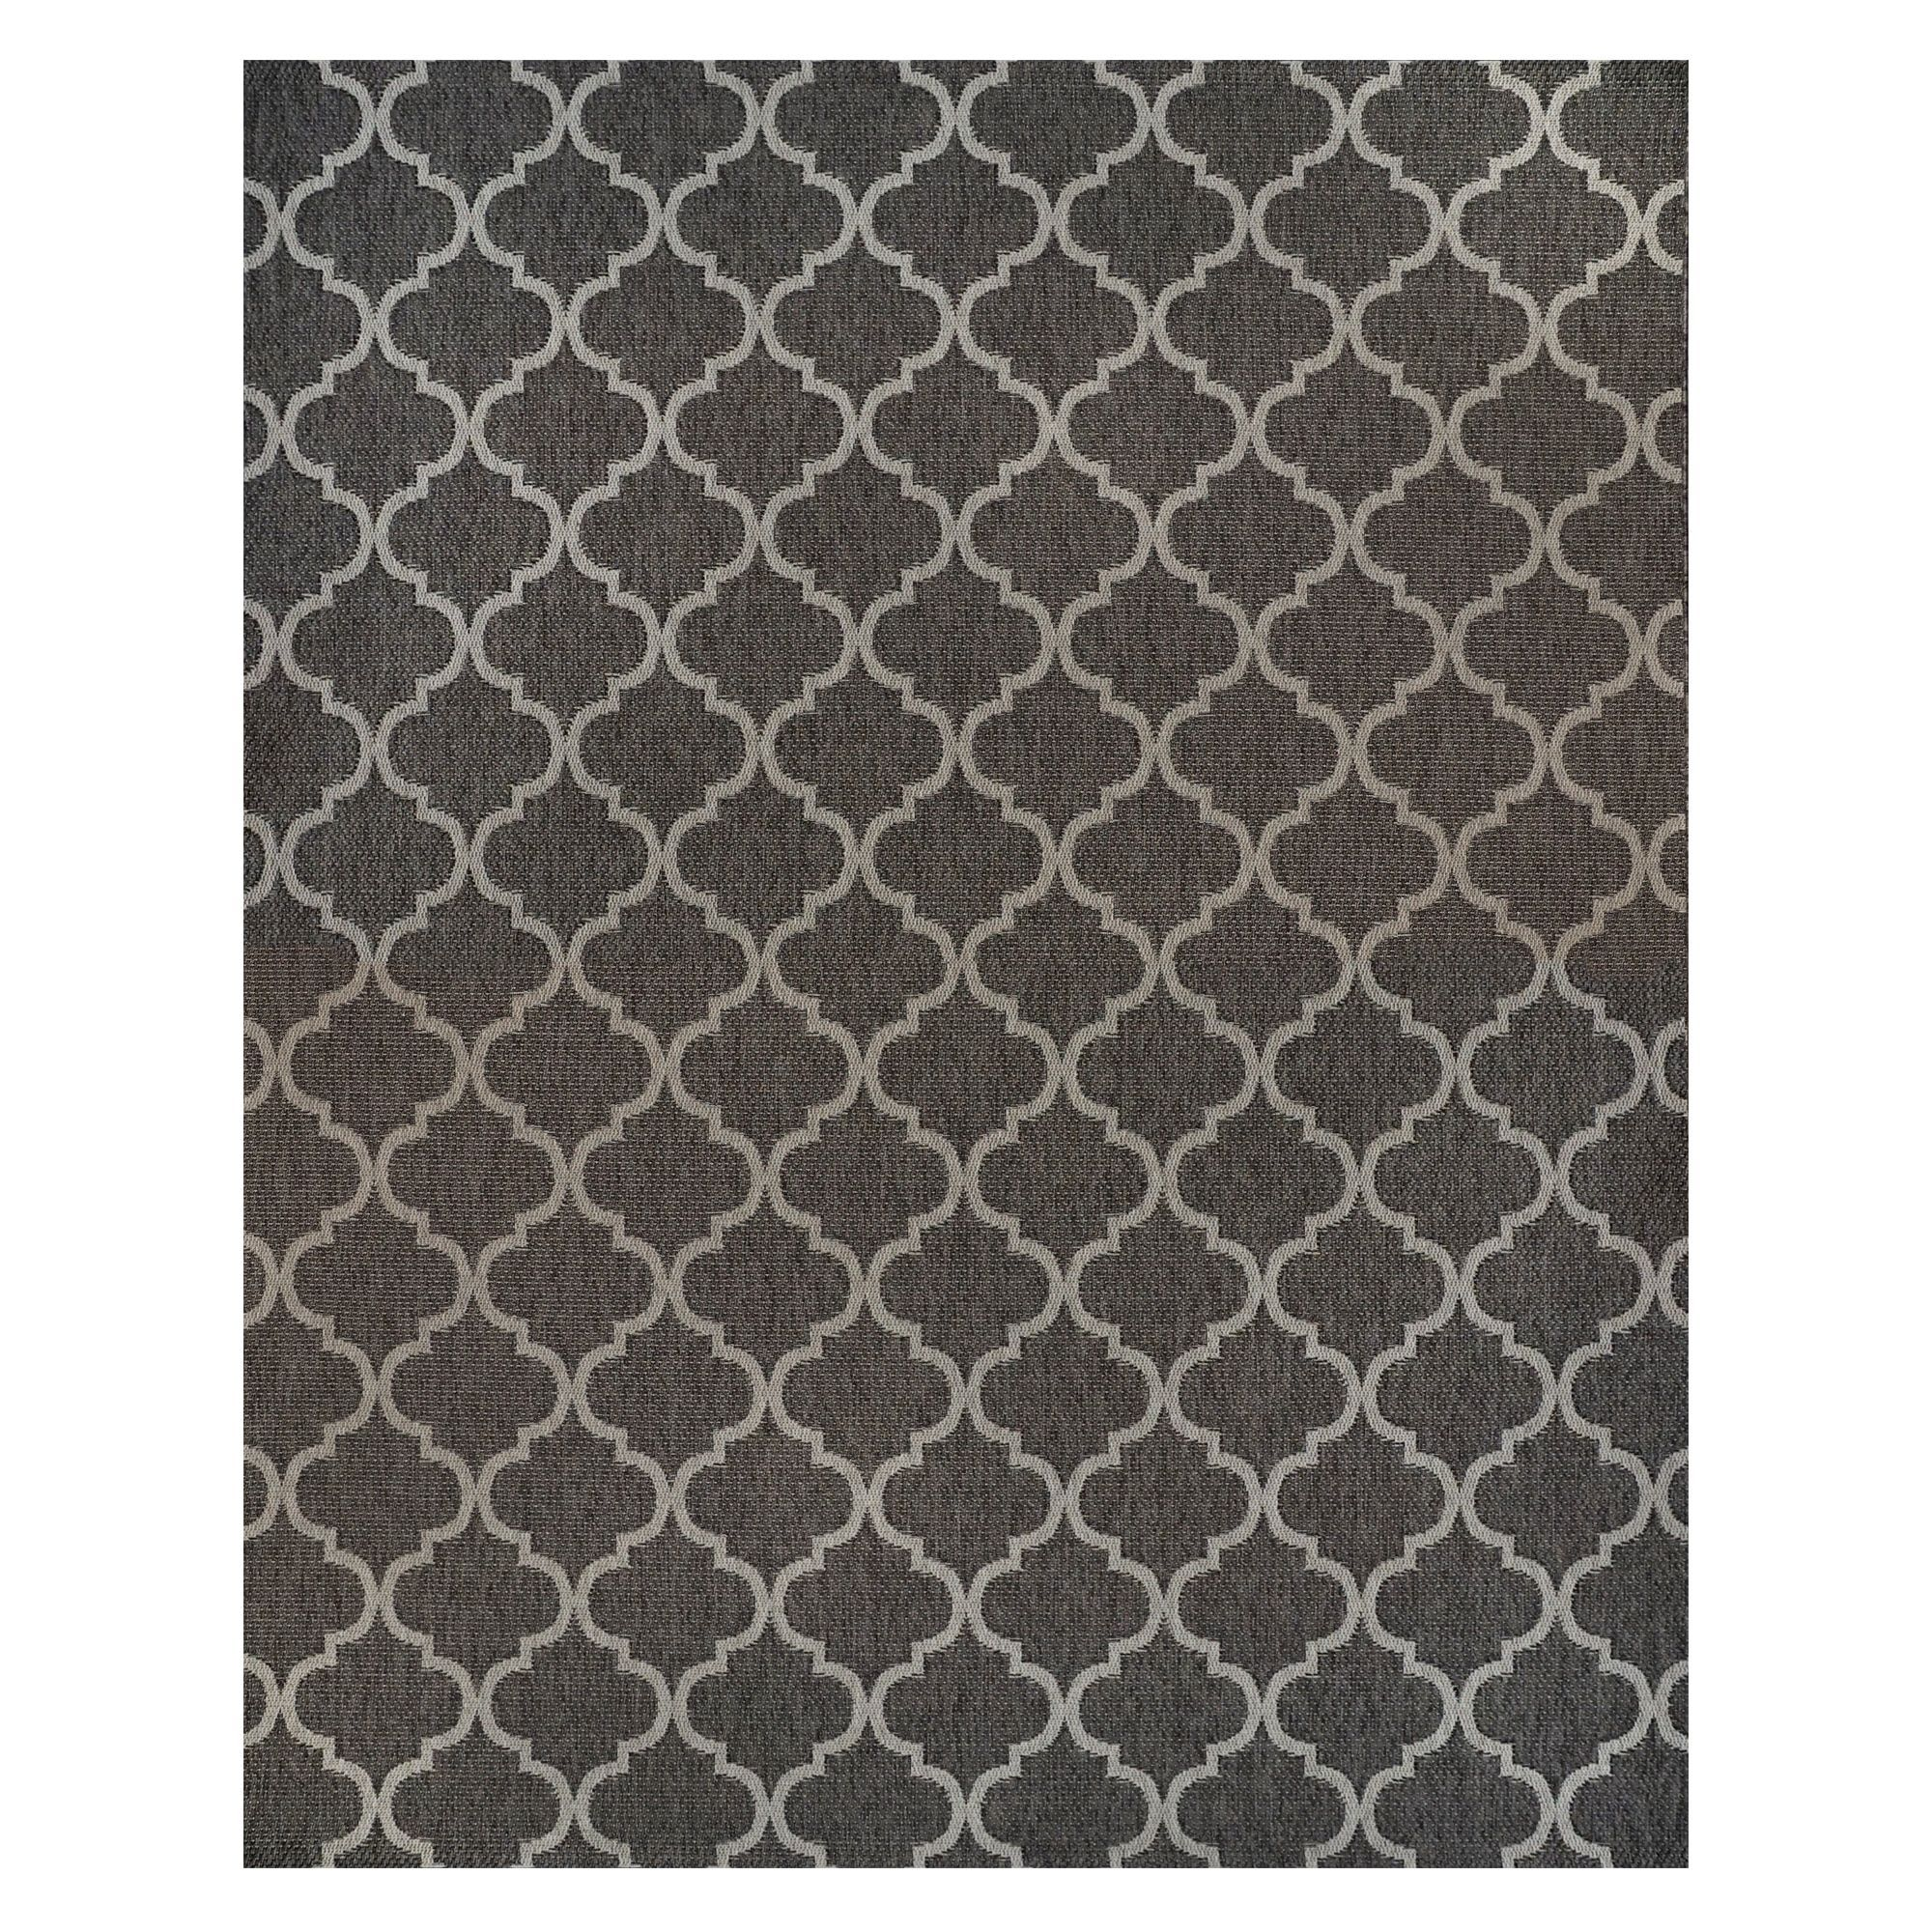 Studio by brown jordan hastings gray polypropylene area rug 710 x 10 machine woven hastings 710 x 10 beige size 8 x 10